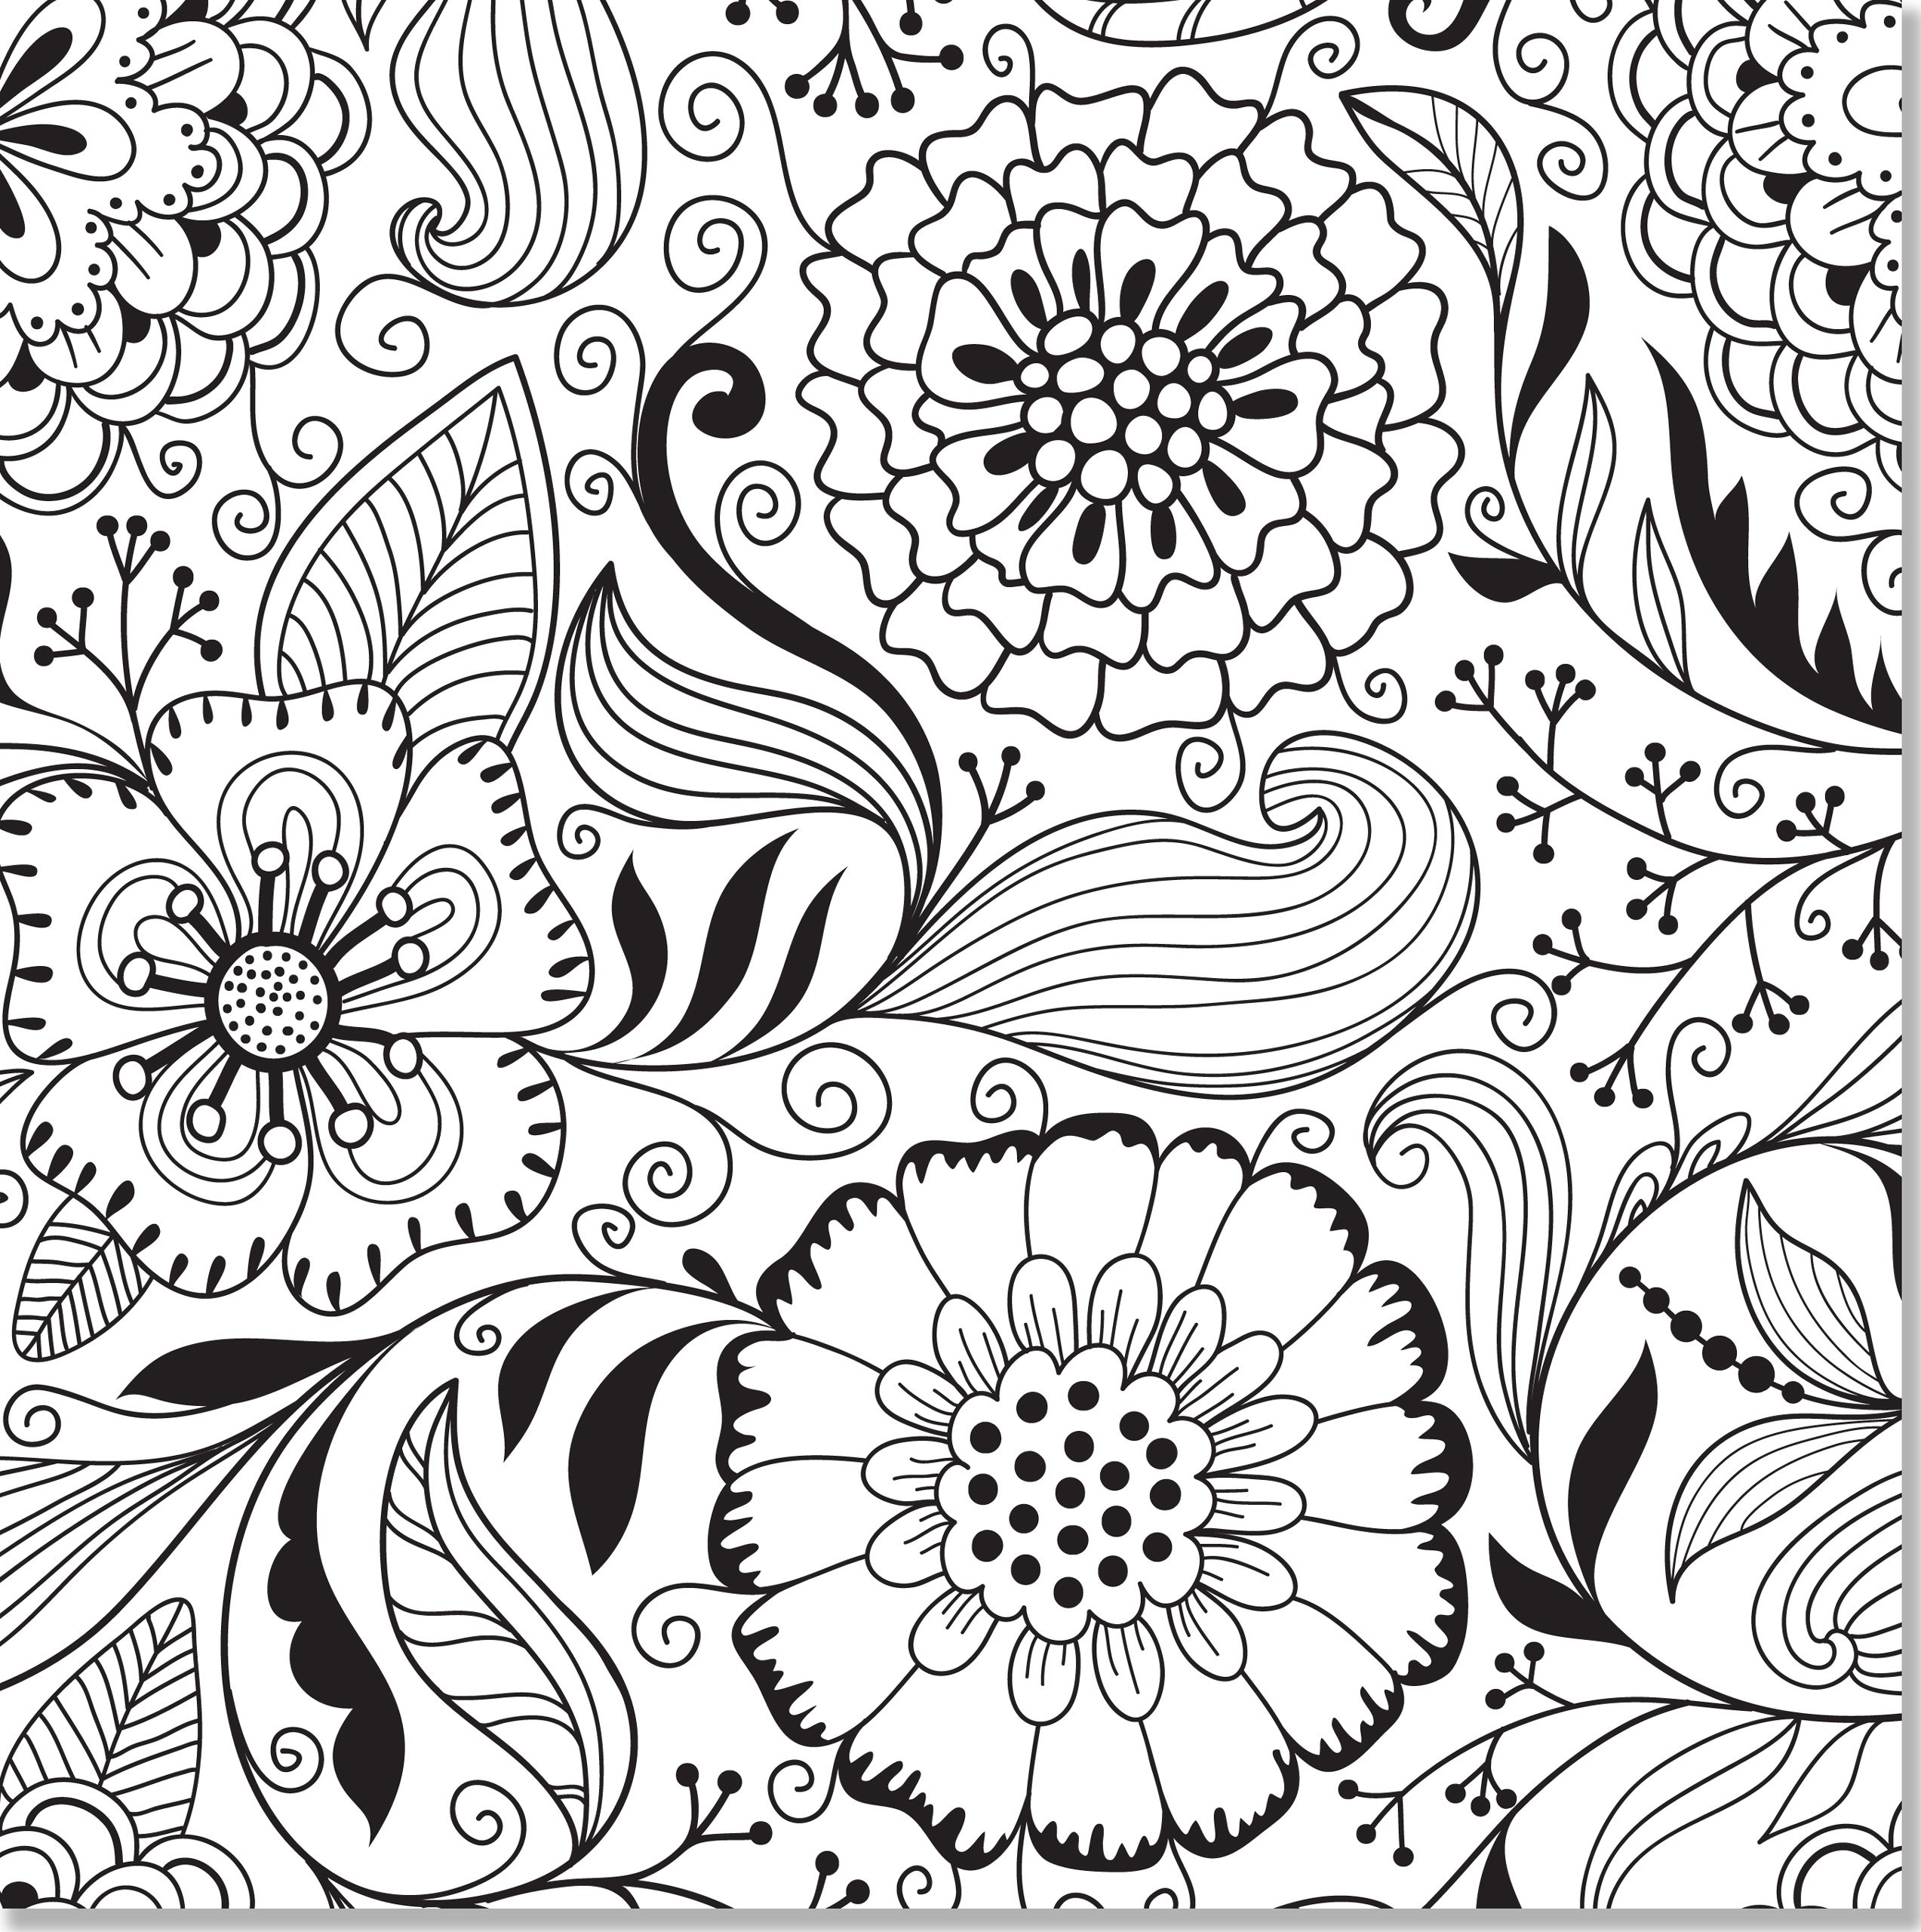 amazoncom floral designs adult coloring book 31 stress relieving designs studio 9781441317452 peter pauper press books - Coloring Page Designs